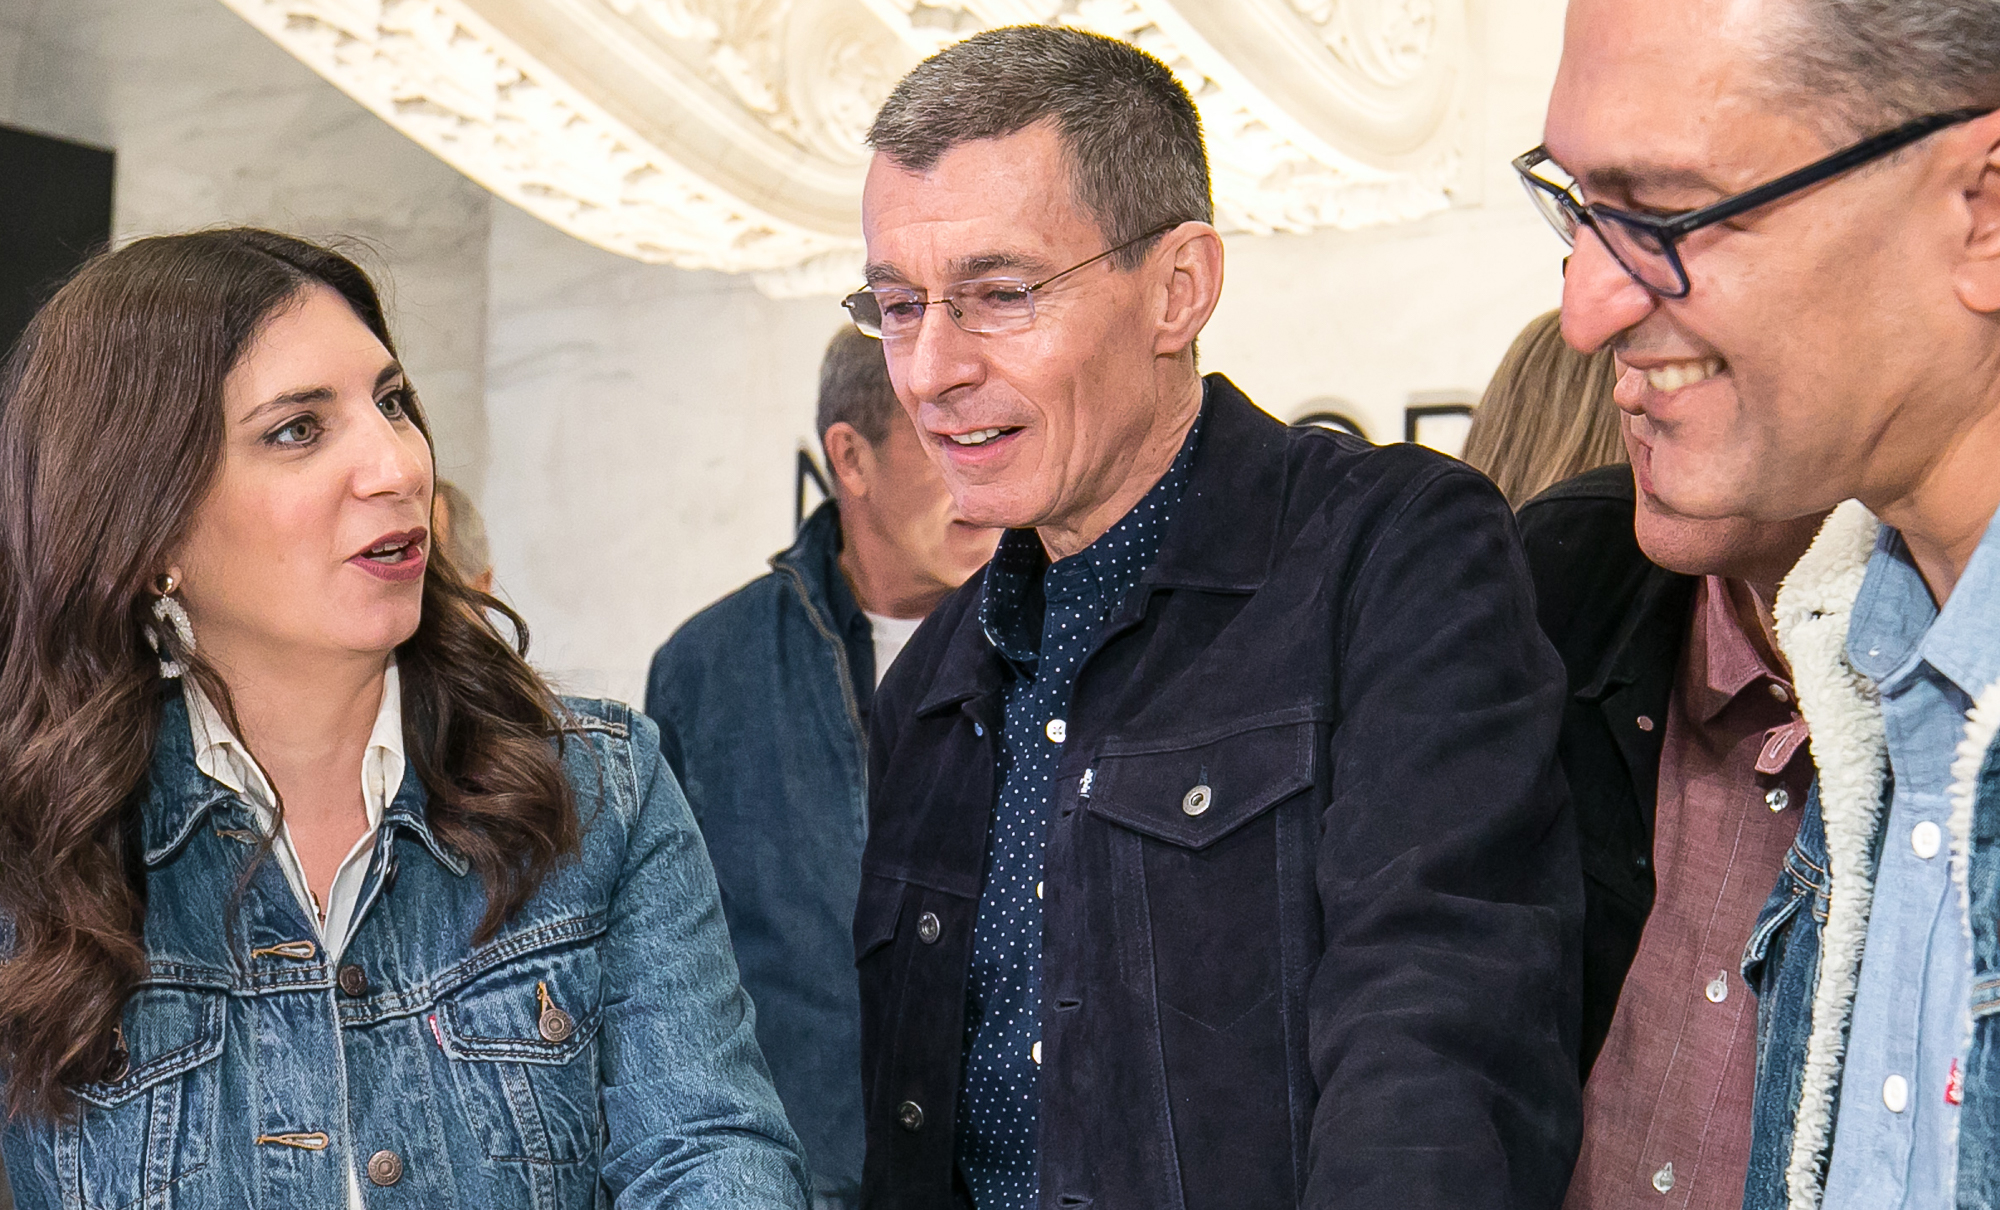 LS&Co. CEO Chip Bergh Named to Fortune's 'World's Greatest Leaders' List